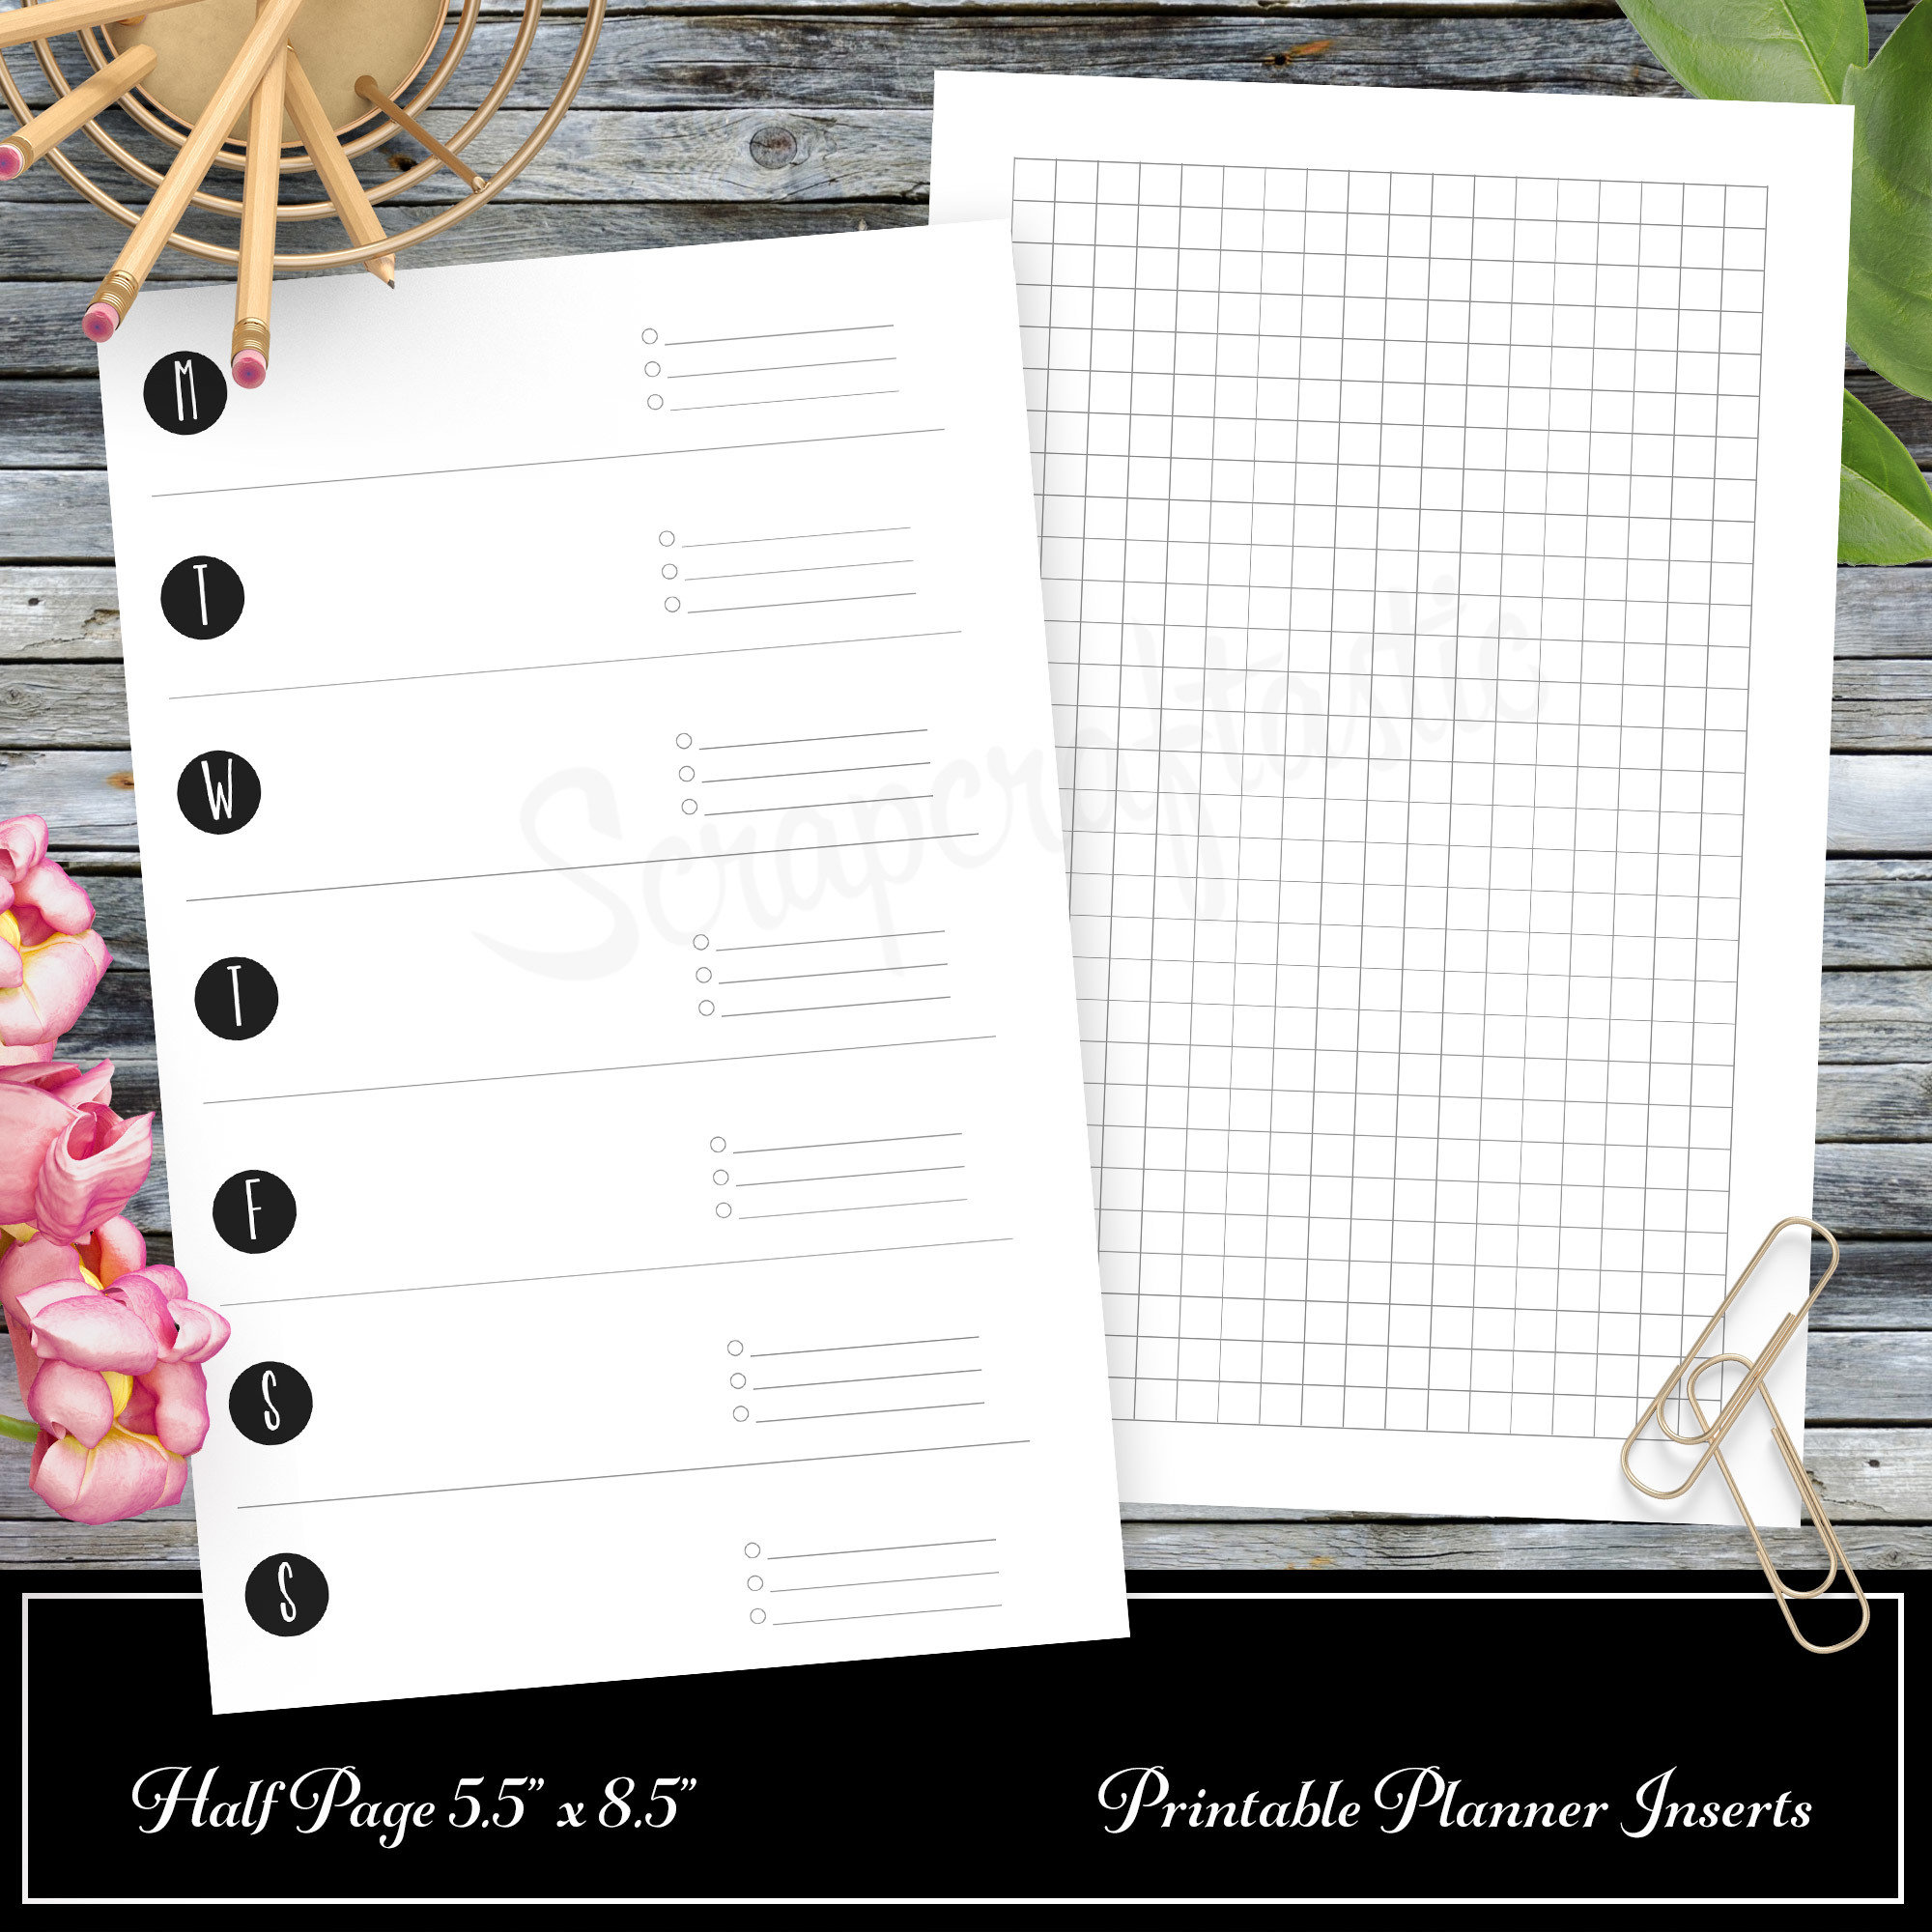 Week on One Page (WO1P) / Weekly Routine With Small Grid Printable Insert Refill Half Page (A5) Size - Filofax, Kikki K, ColorCrush 00302